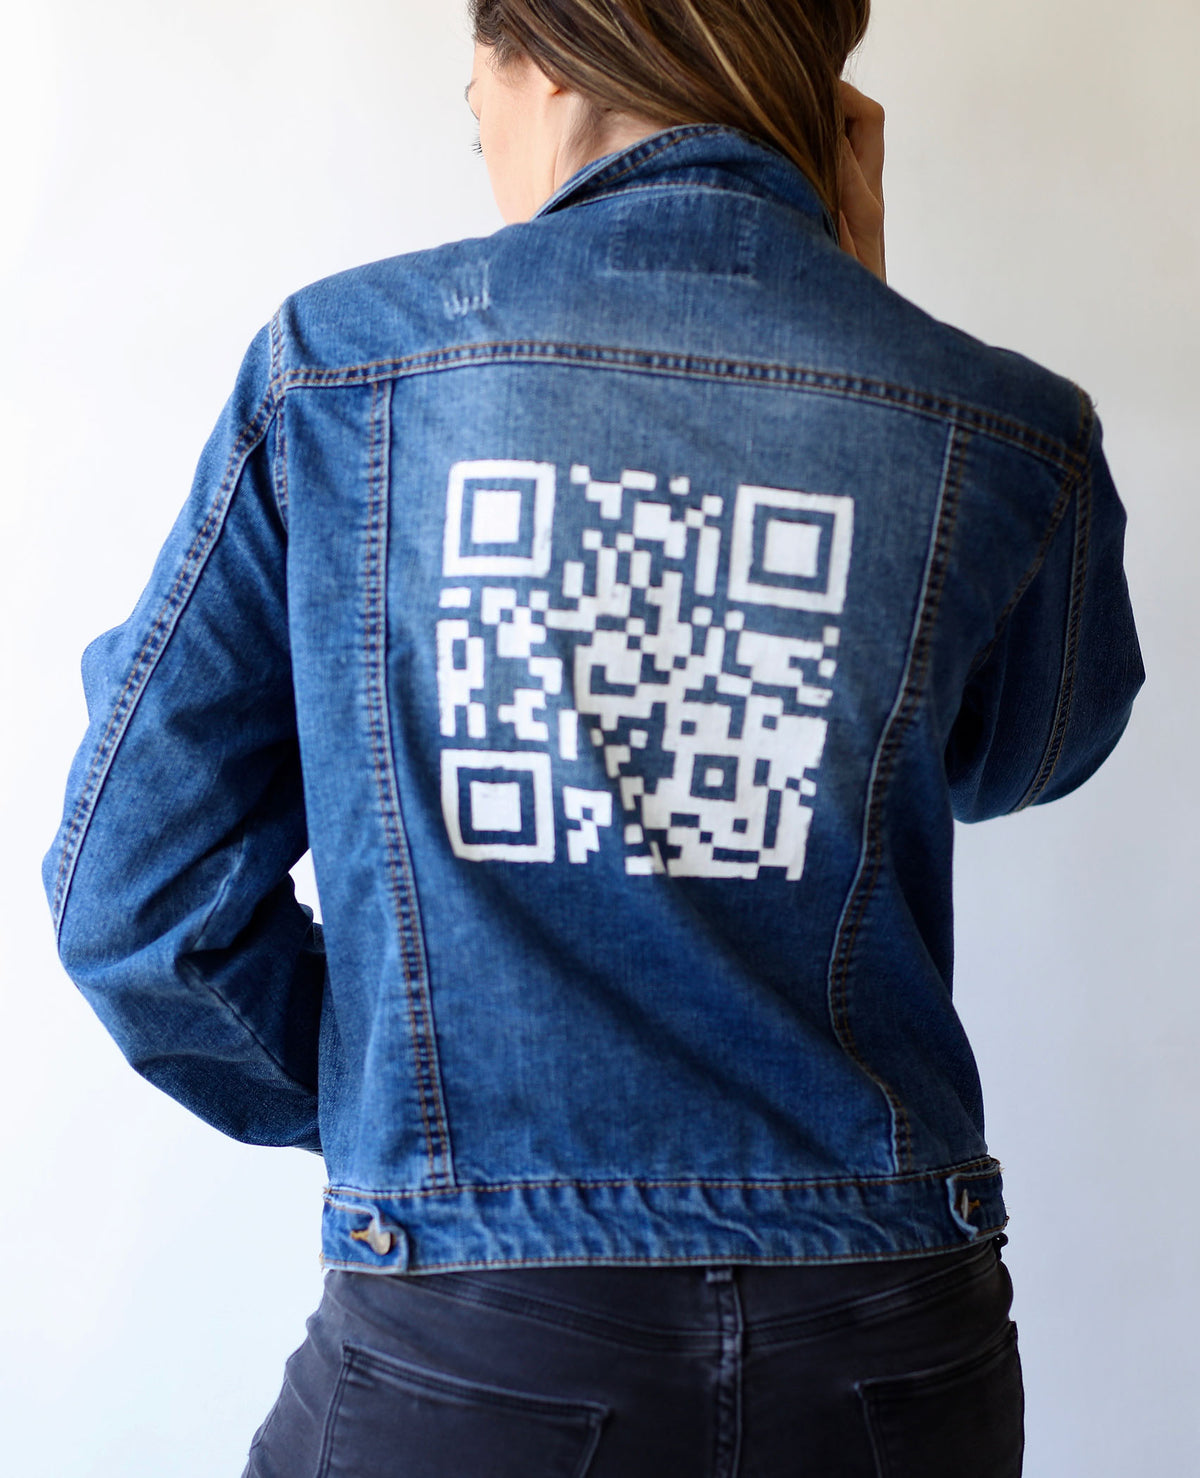 QR Code Jean Jacket (Actual Size of Hen Cage)